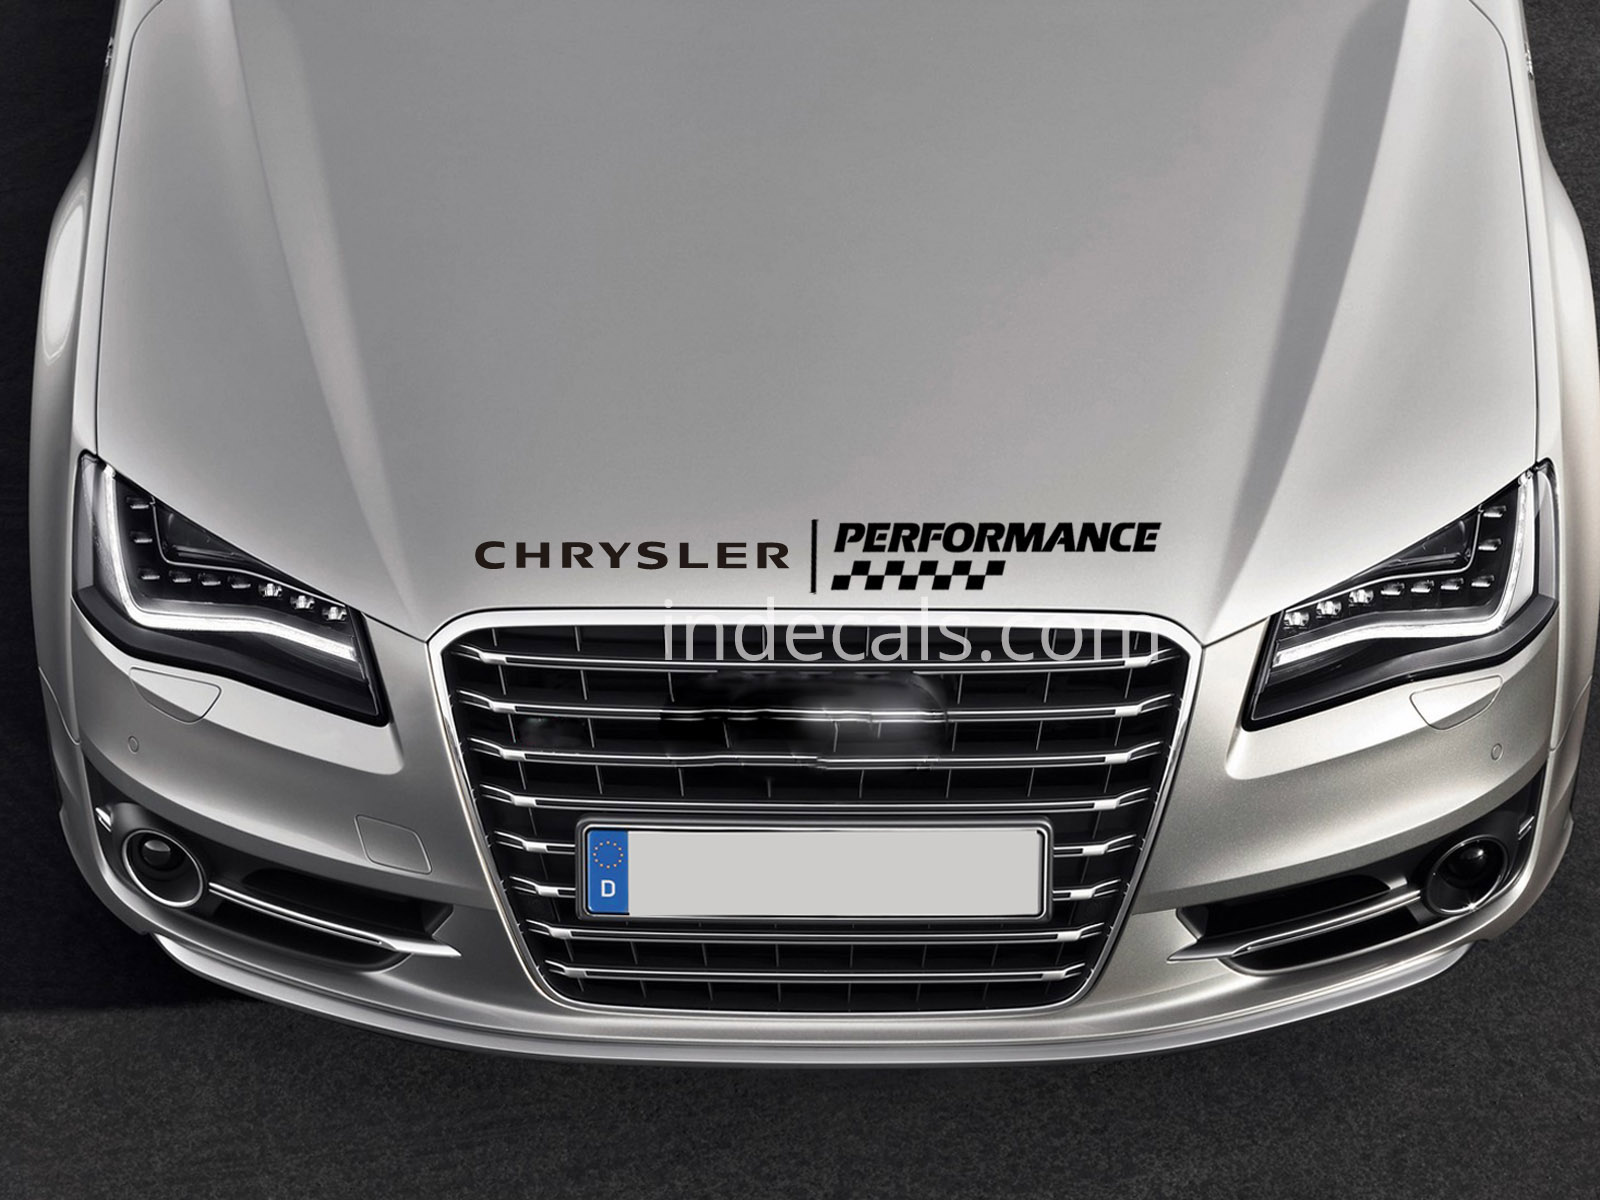 1 x Chrysler Performance Sticker for Bonnet - Black